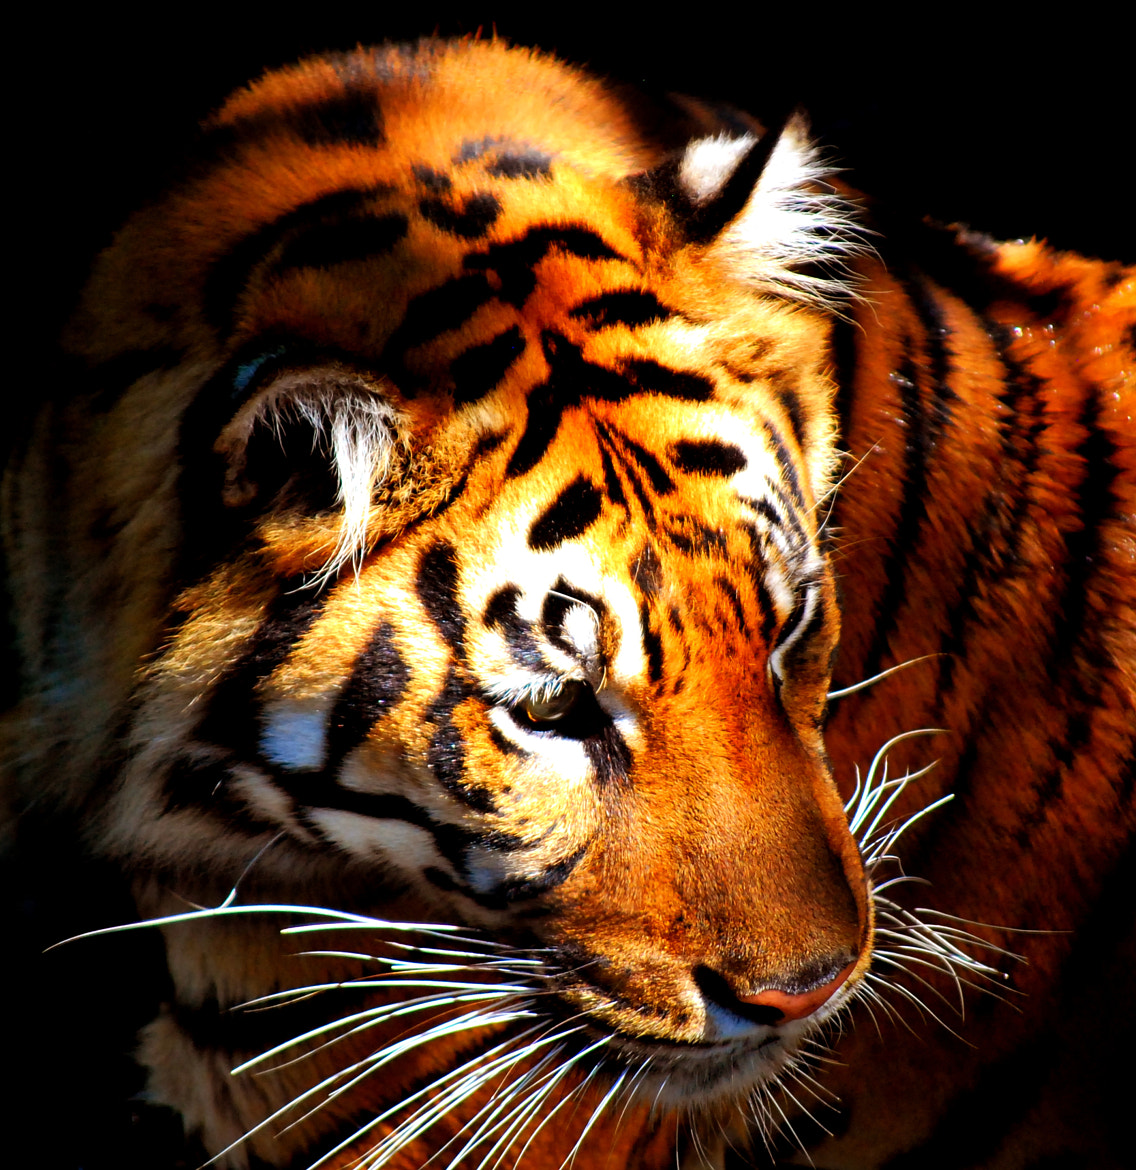 Photograph Tiger in the Den by Sean Whittier on 500px